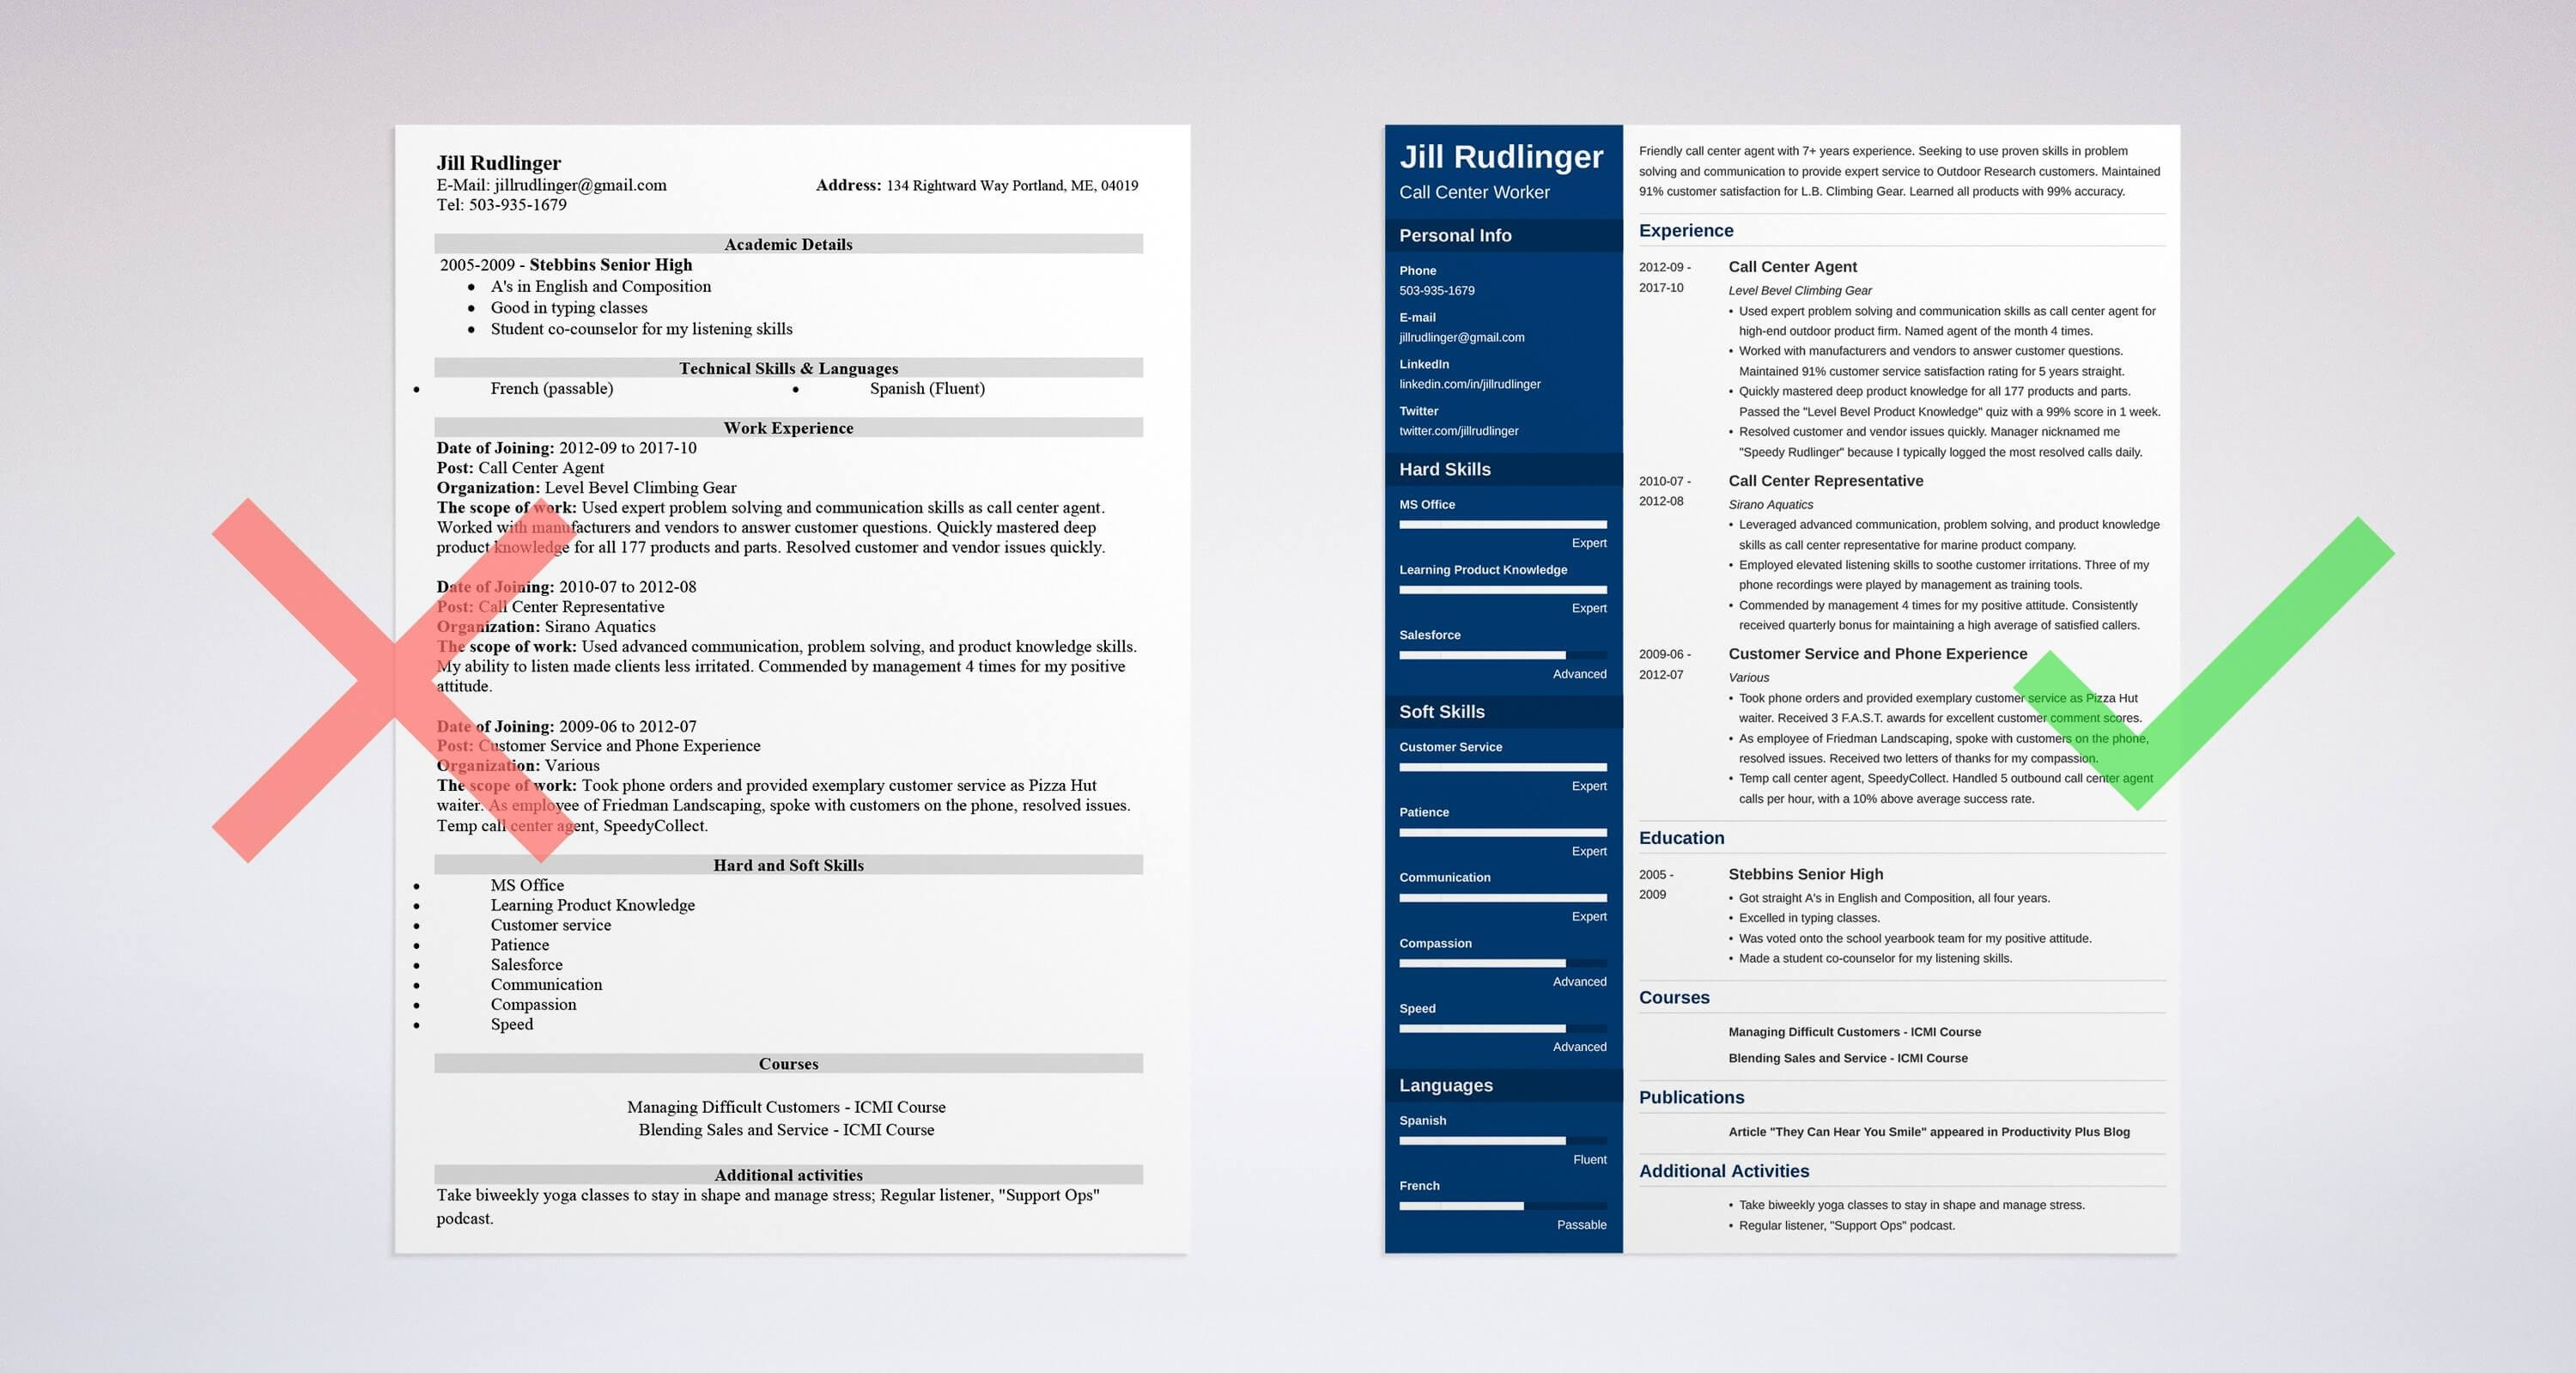 callcenter cv Call Center Resume: Sample and Complete Guide [+20 Examples]